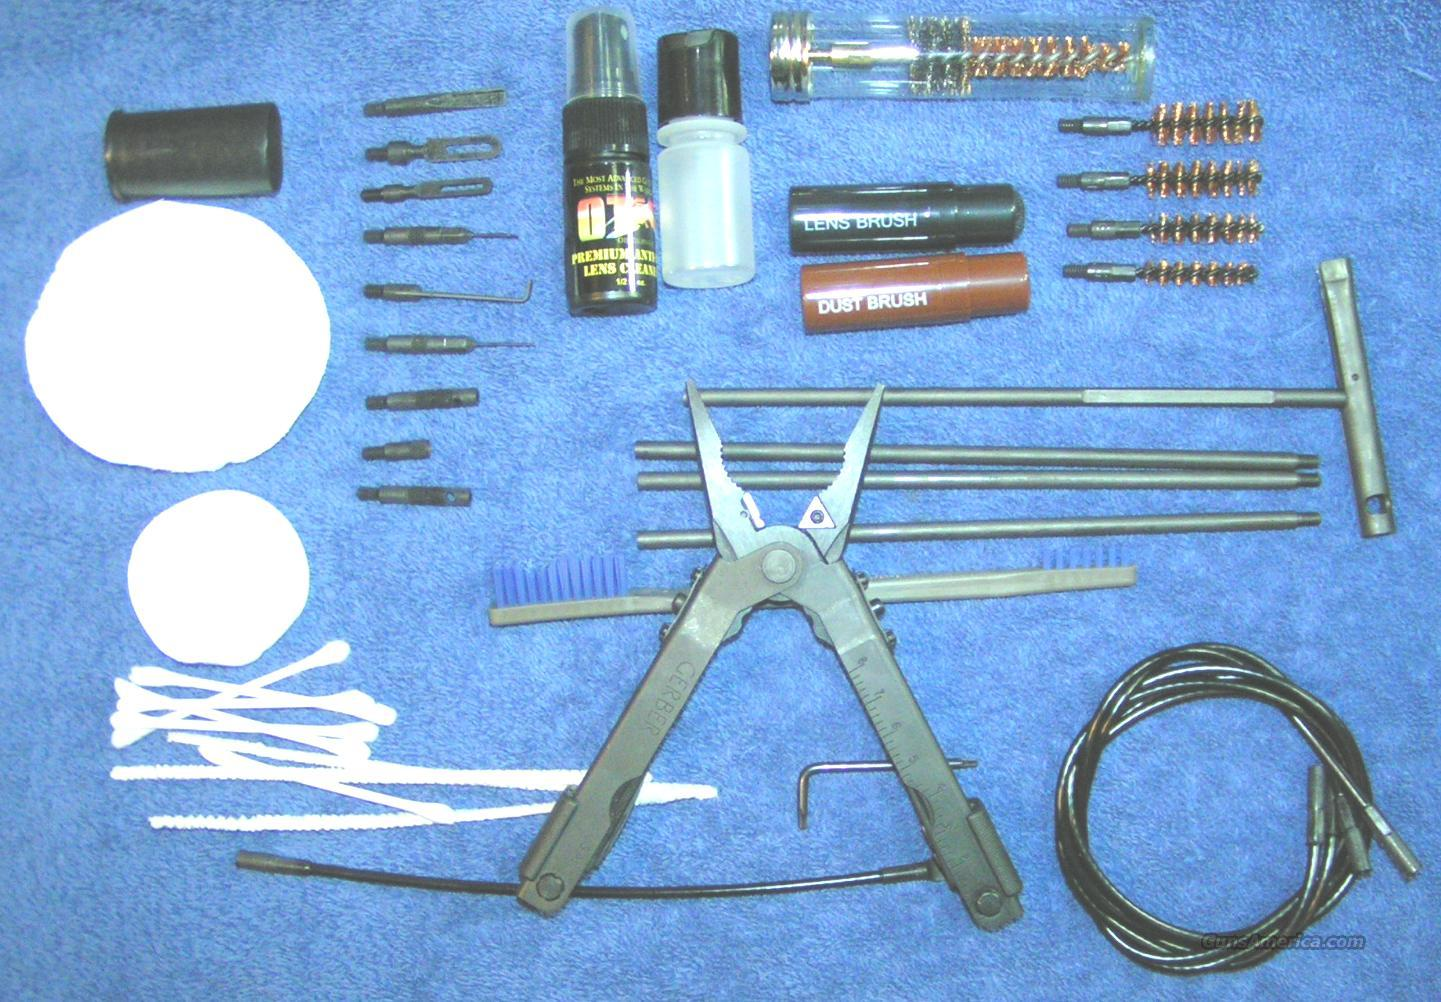 Cleaning kit Otis w Gerber tool IWCK AR15 AK47, M4, 1911 + more  Non-Guns > Gunsmith Tools/Supplies